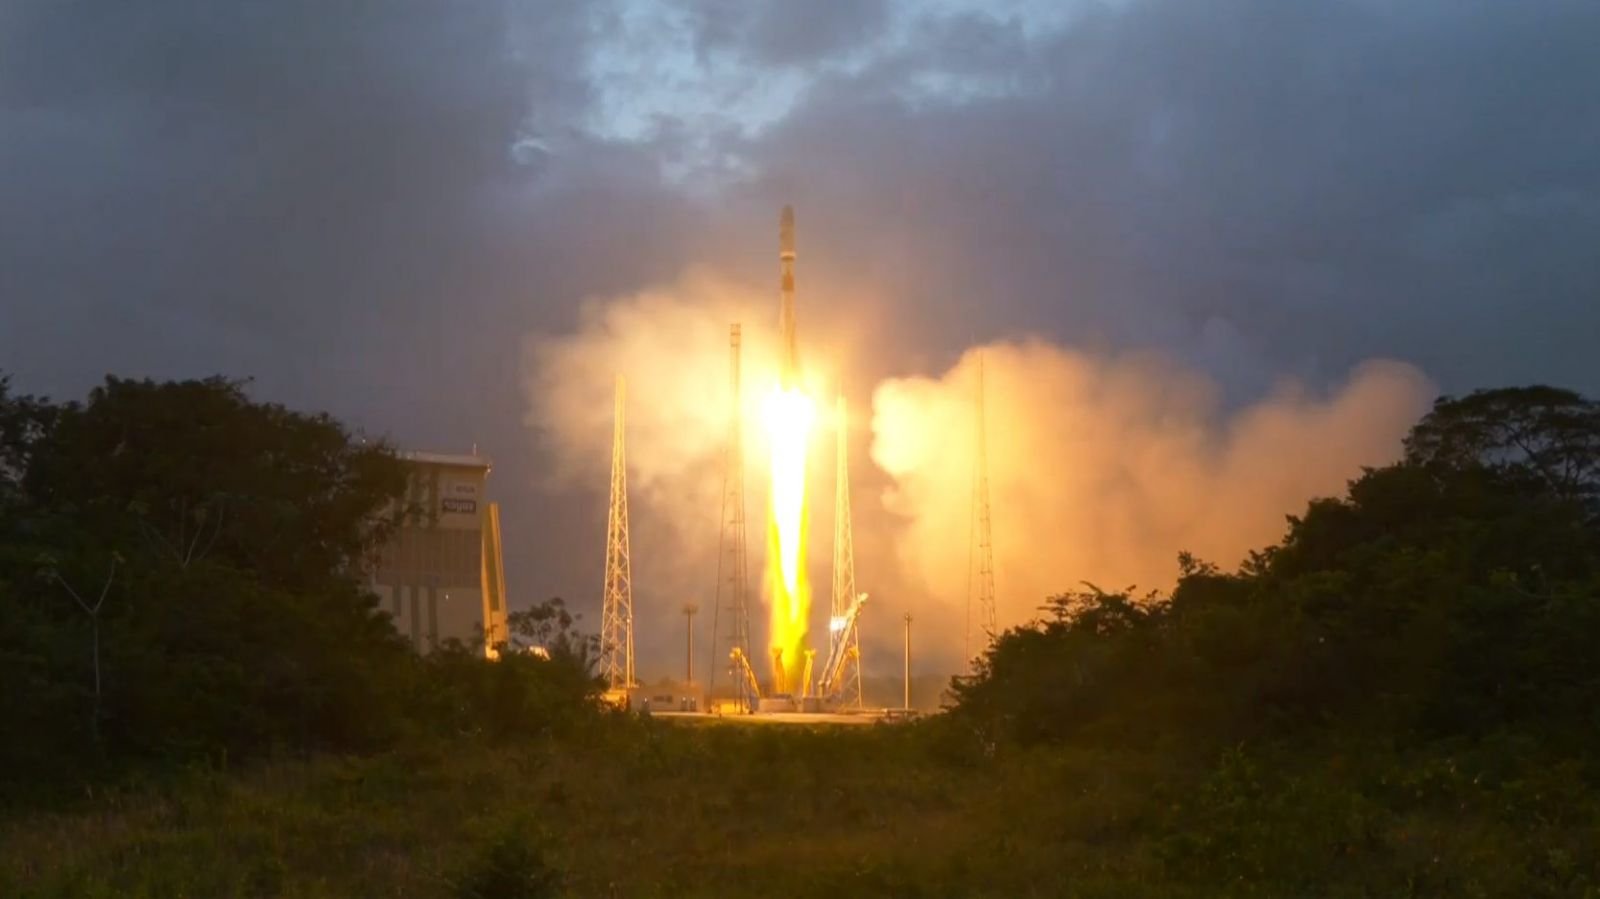 A Soyuz lifts off from the launch pad at the Guiana Space Center in South America to send the first six OneWeb satellites into orbit. Photo Credit: Arianespace